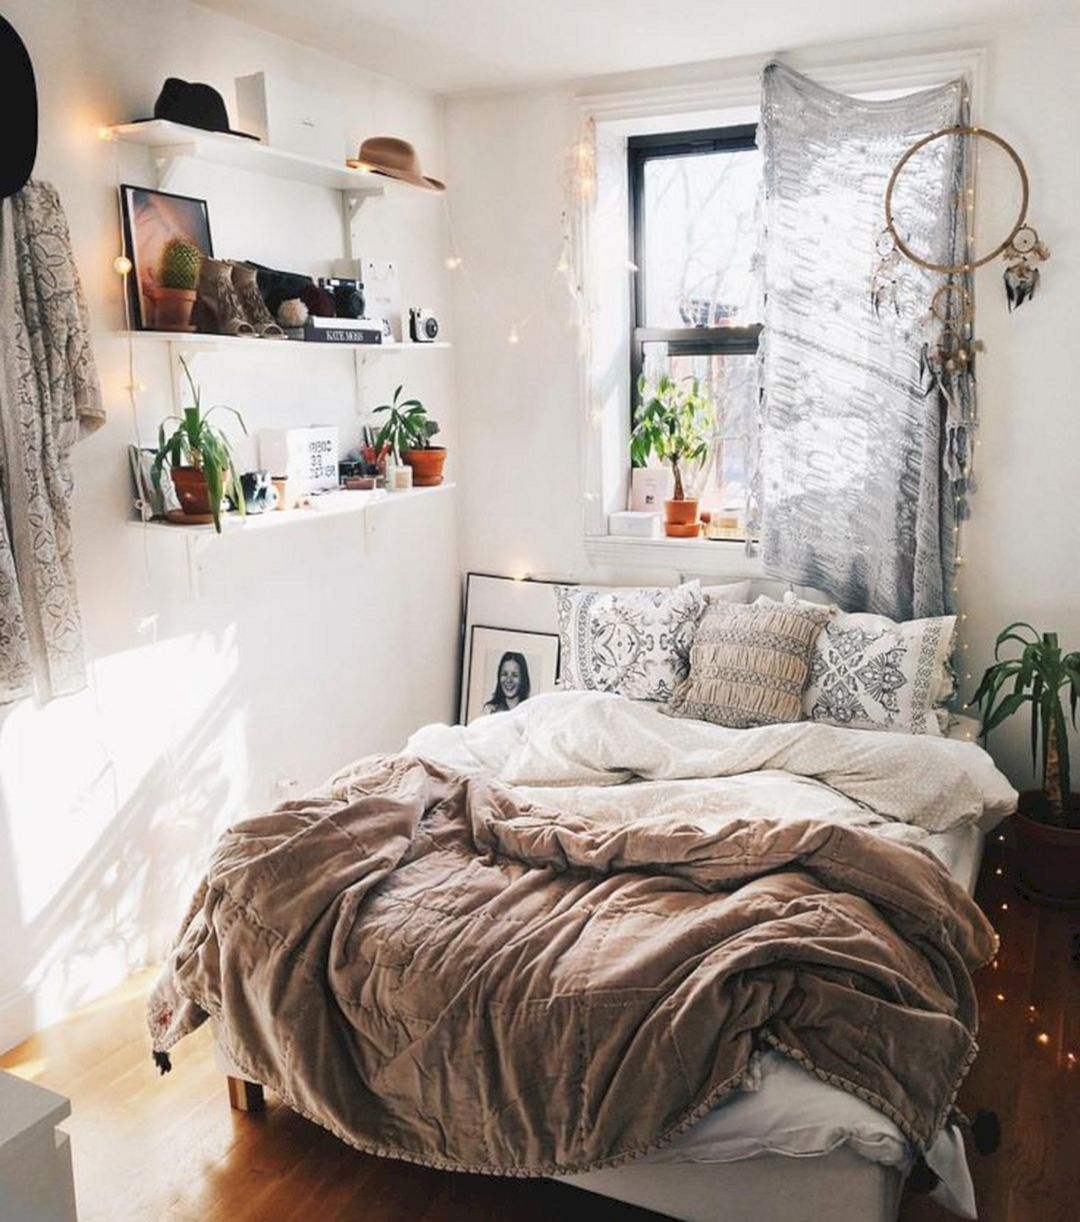 Cozy Bedroom Decorating Ideas: 10+ Best And Modern Bedroom Decorating For Your Cozy